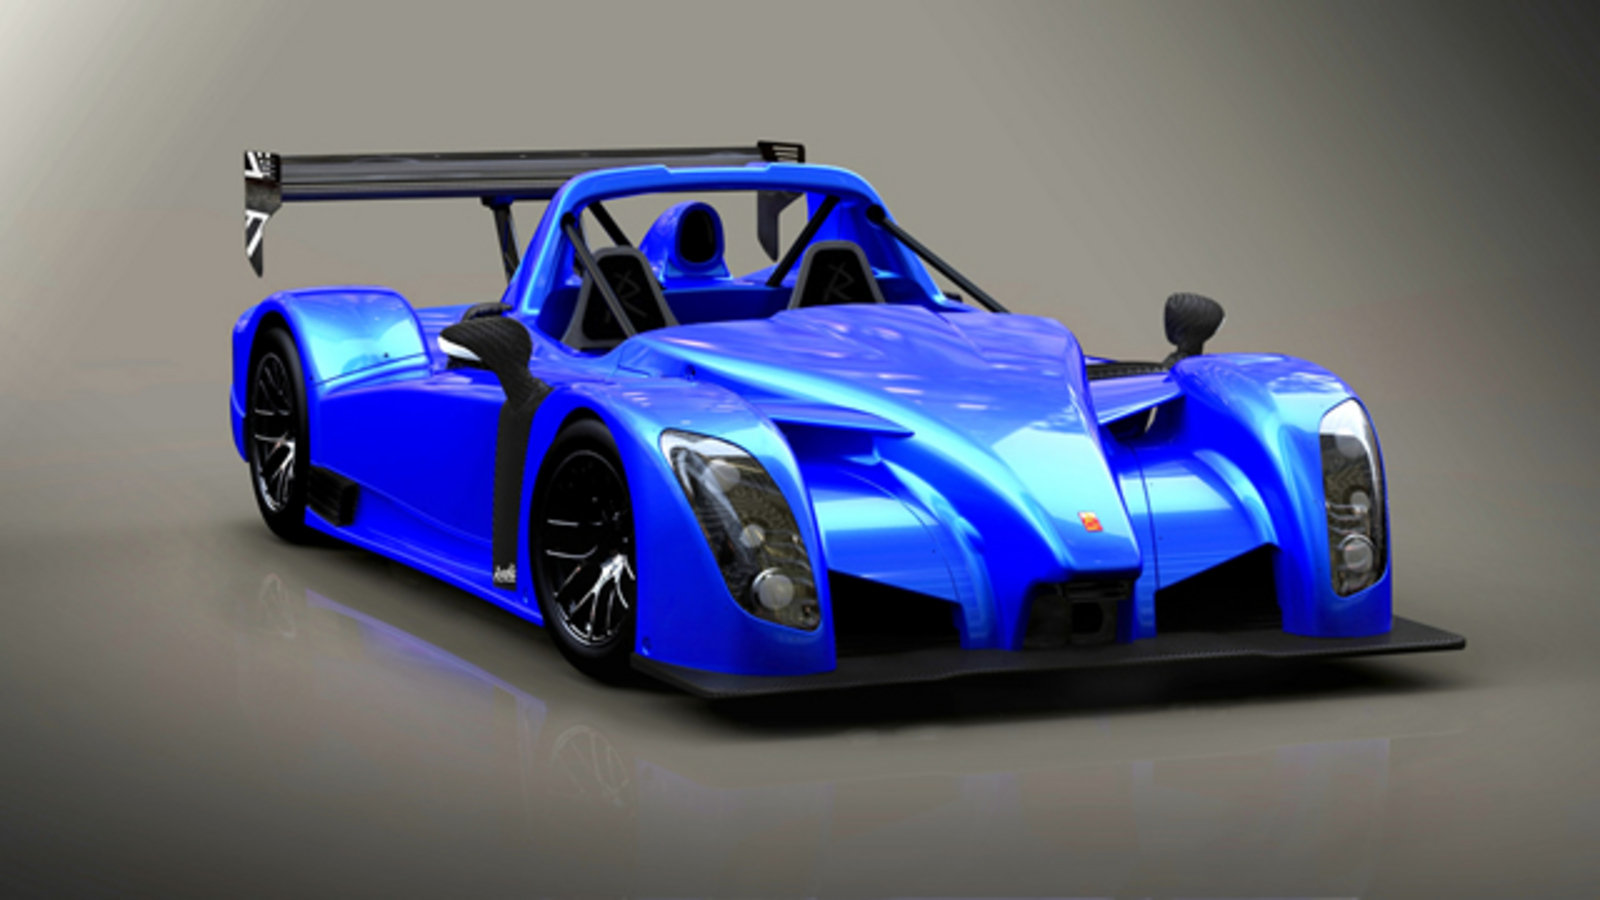 Most Expensive Car In The World >> 2015 Radical RXC Spyder Review - Top Speed